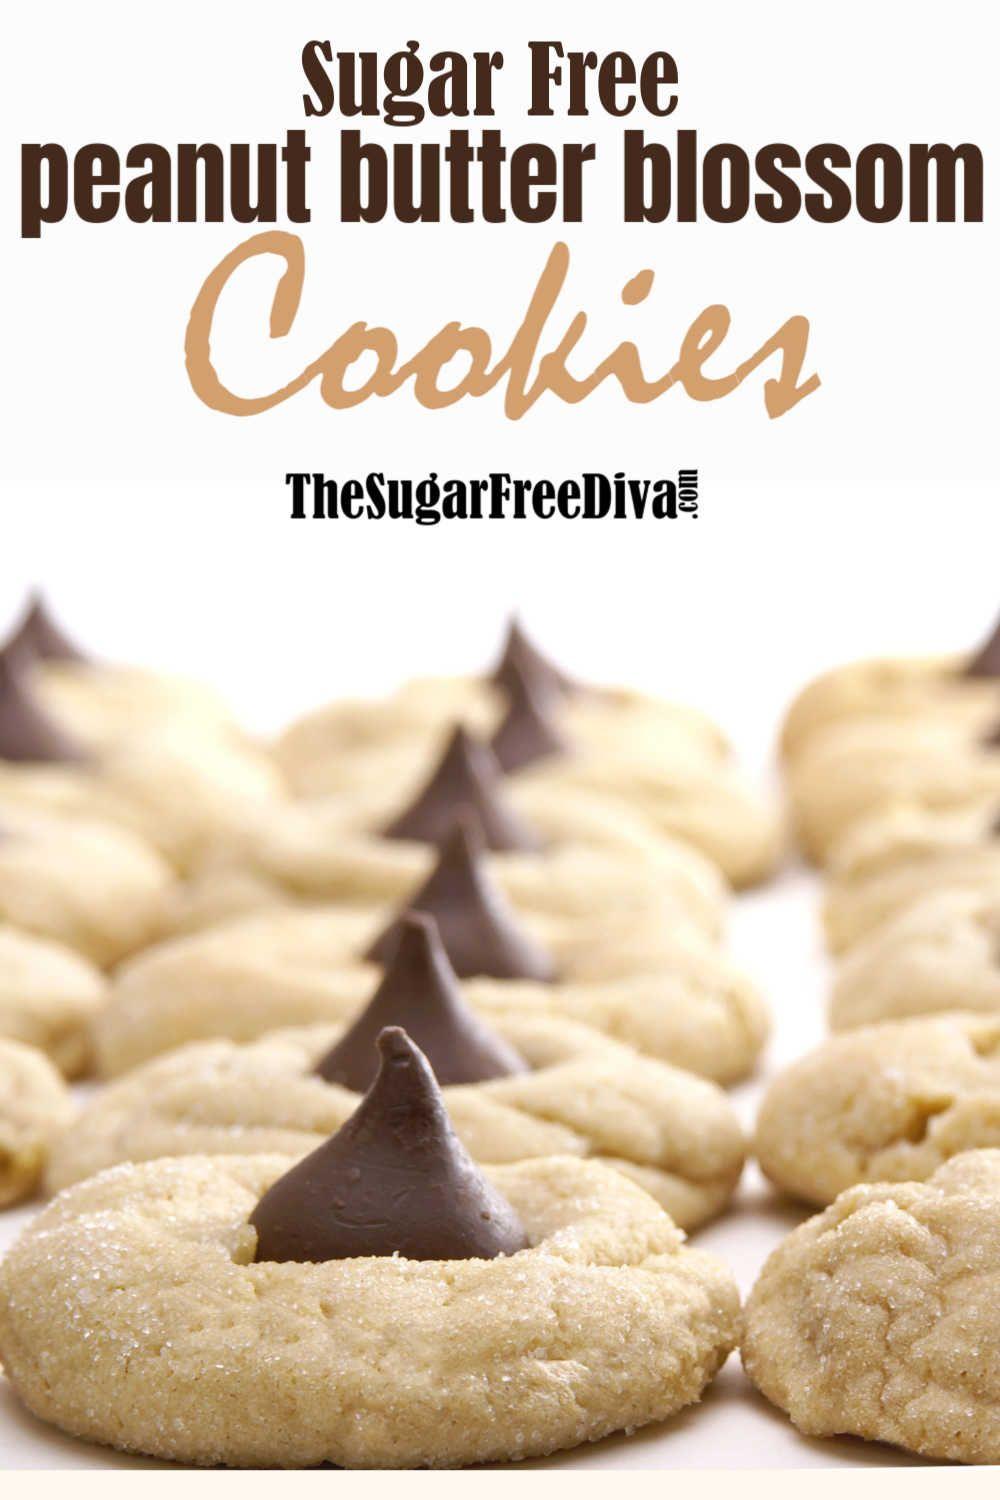 Sugar Free Peanut Butter Blossom Cookies - THE SUGAR FREE DIVA #peanutbutterblossomcookies